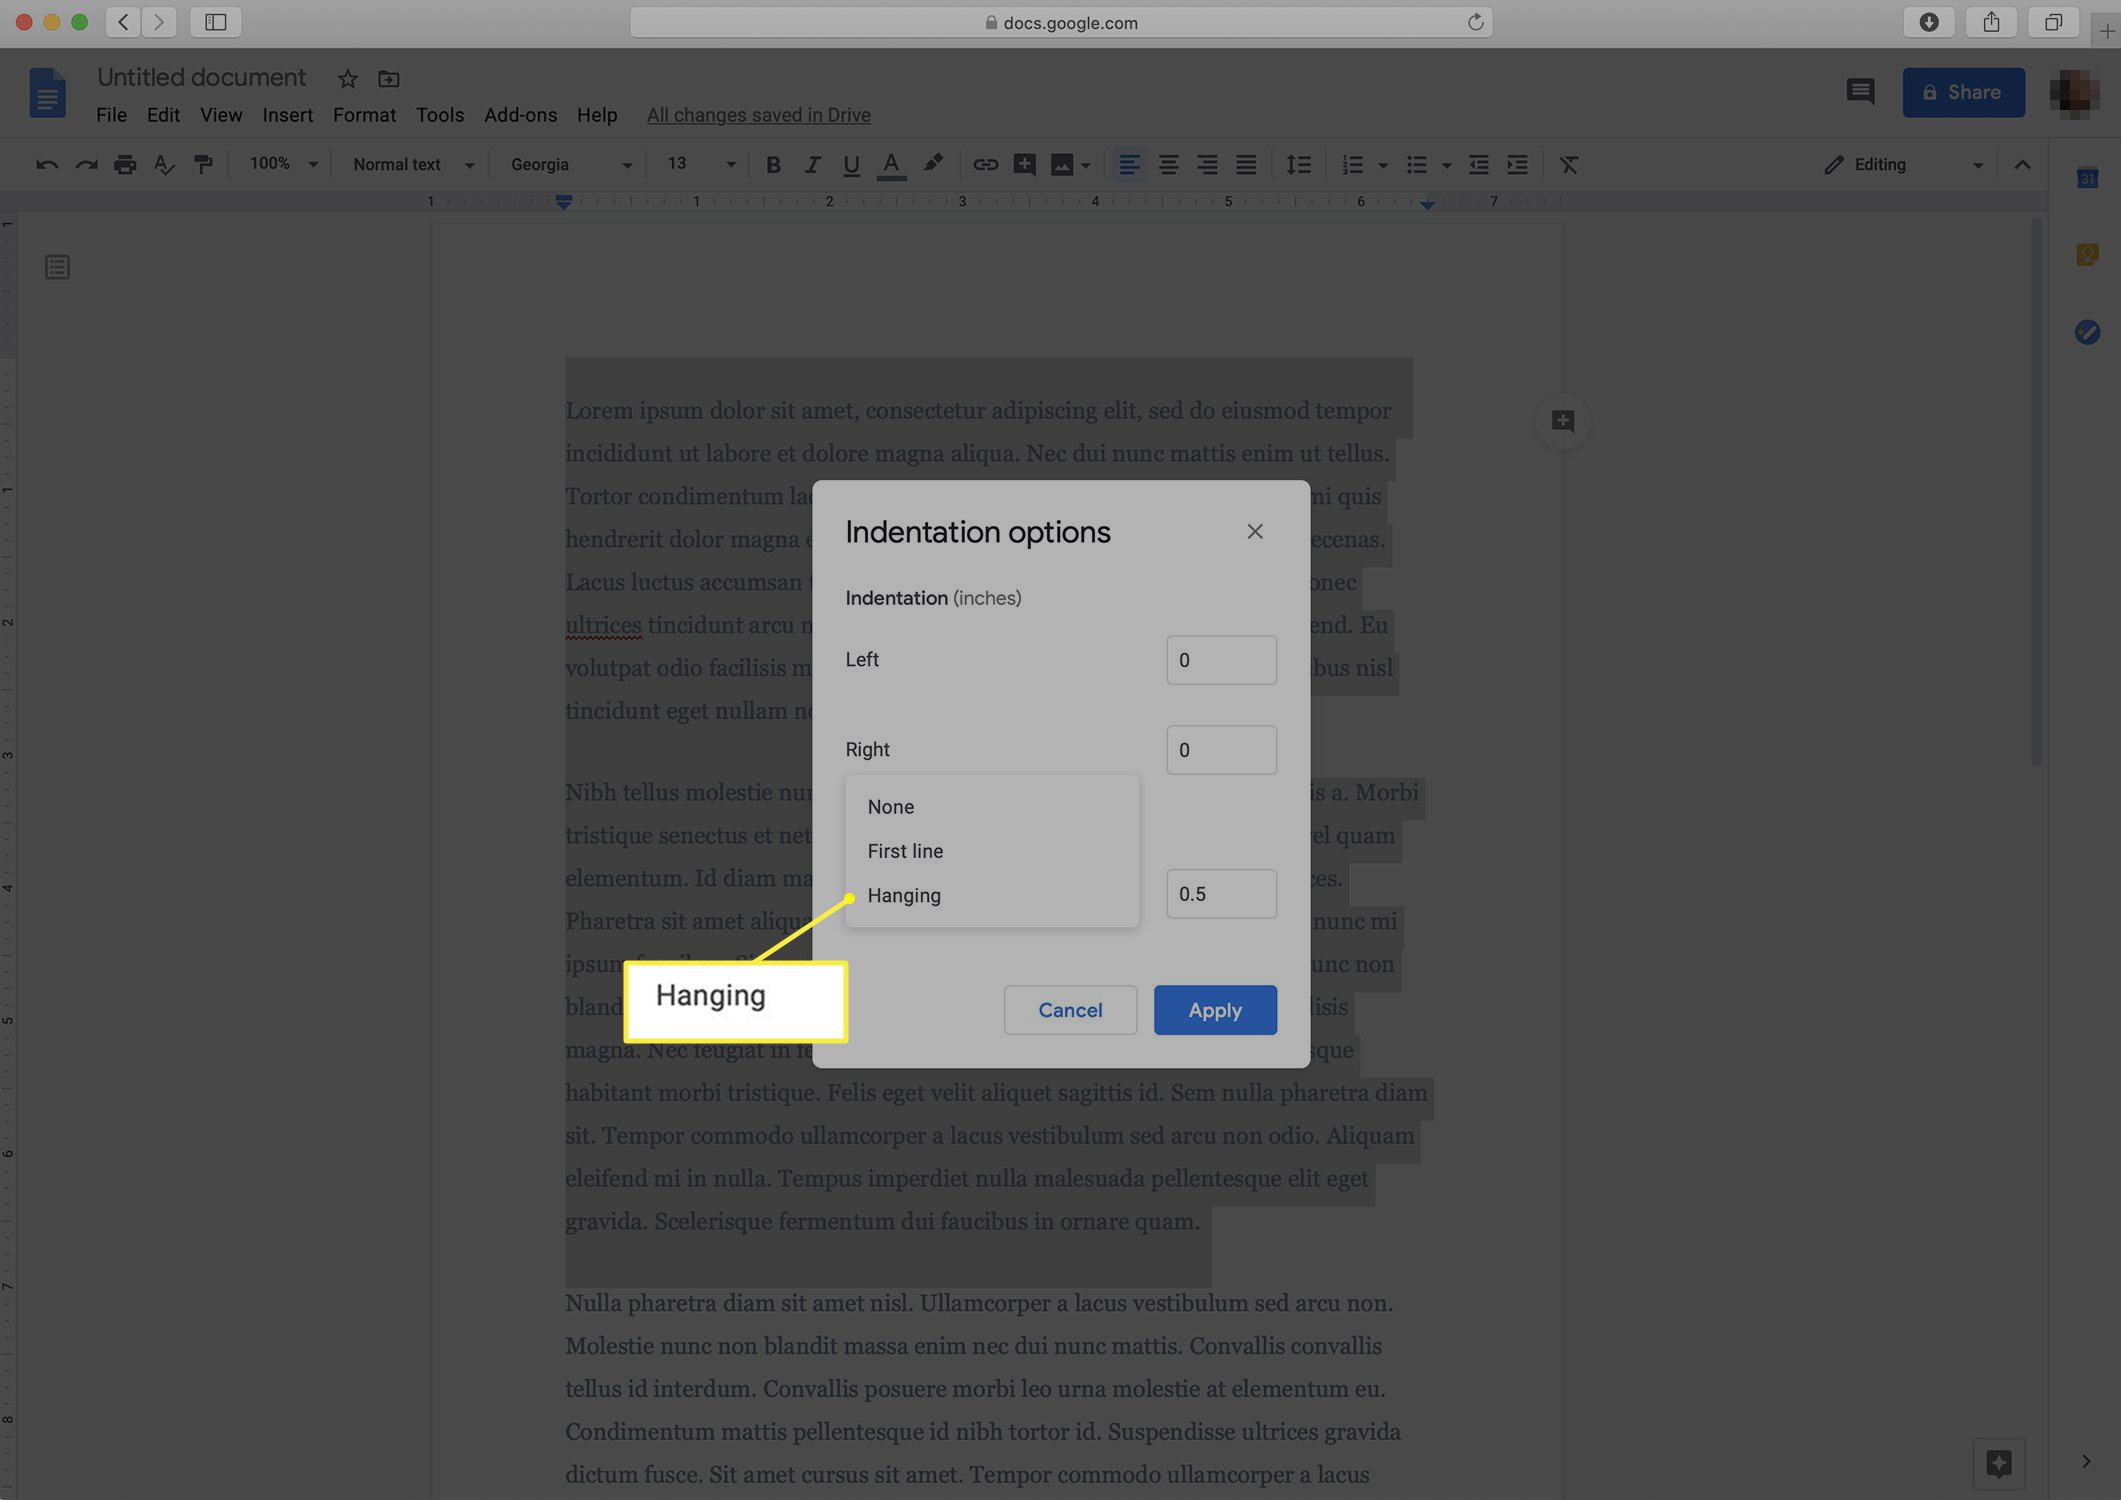 Hanging indent options